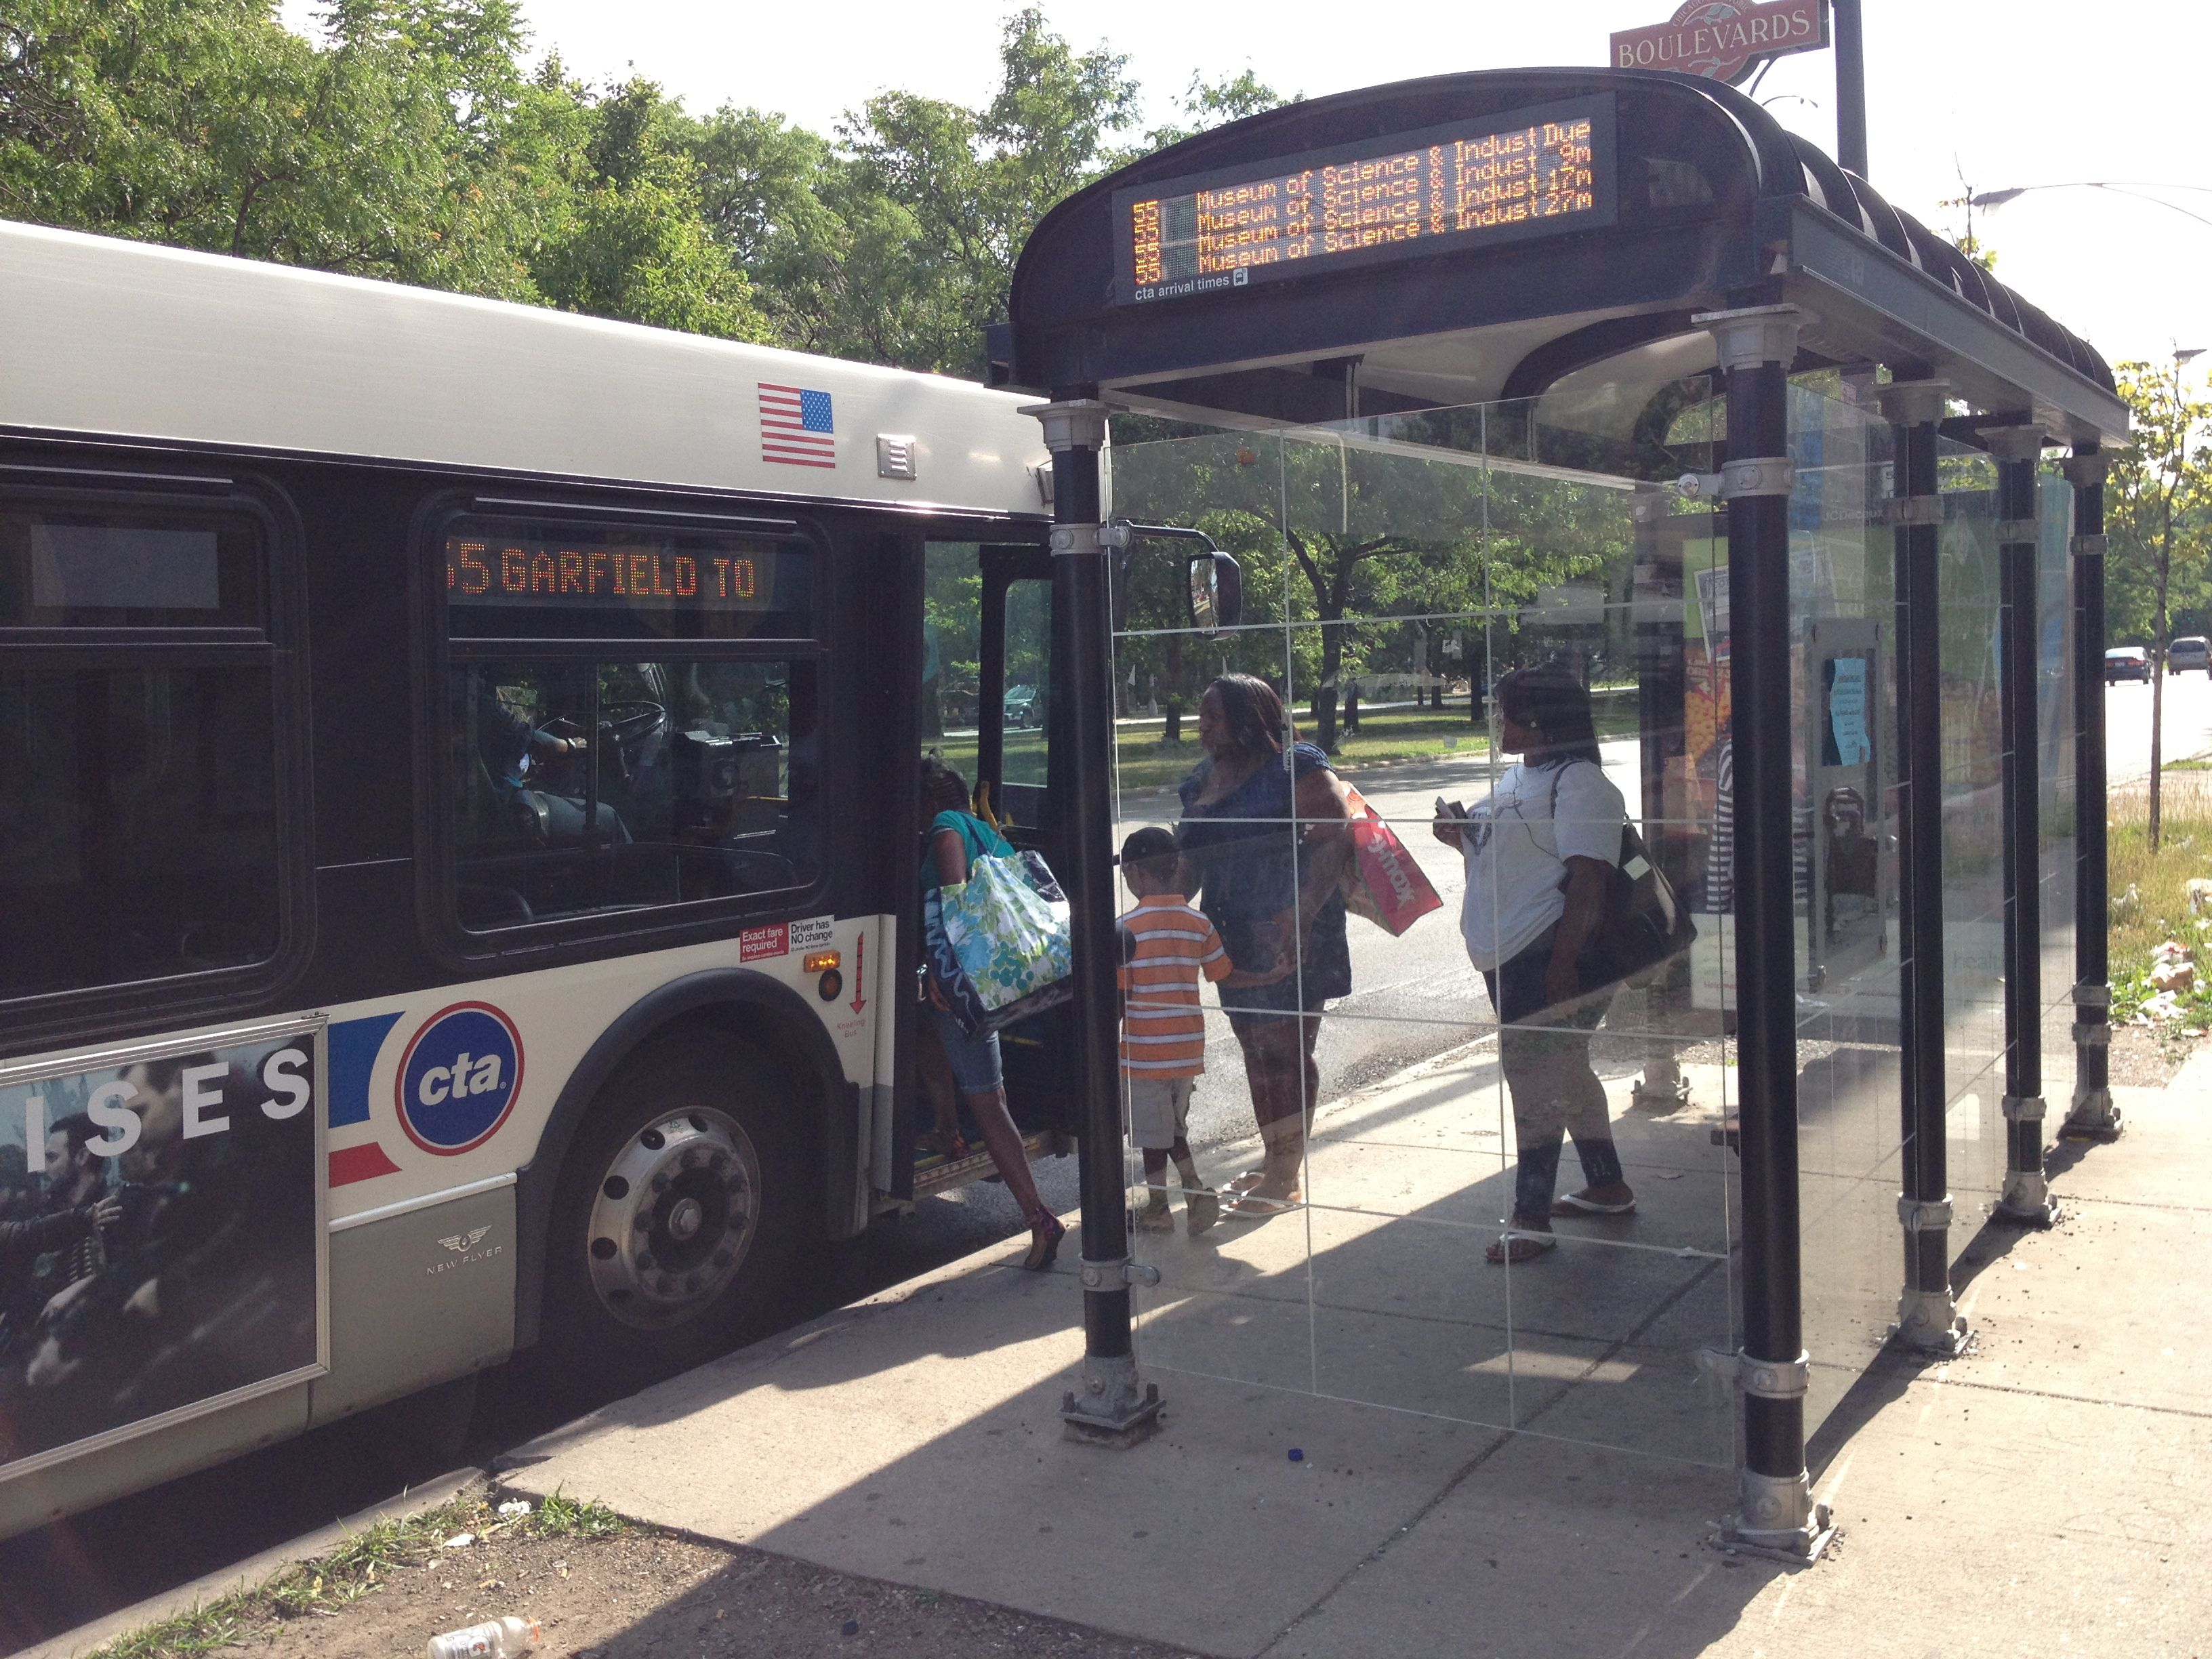 Bus Stop Shelters : Los angeles and the dignity of bus stop shelters chicago